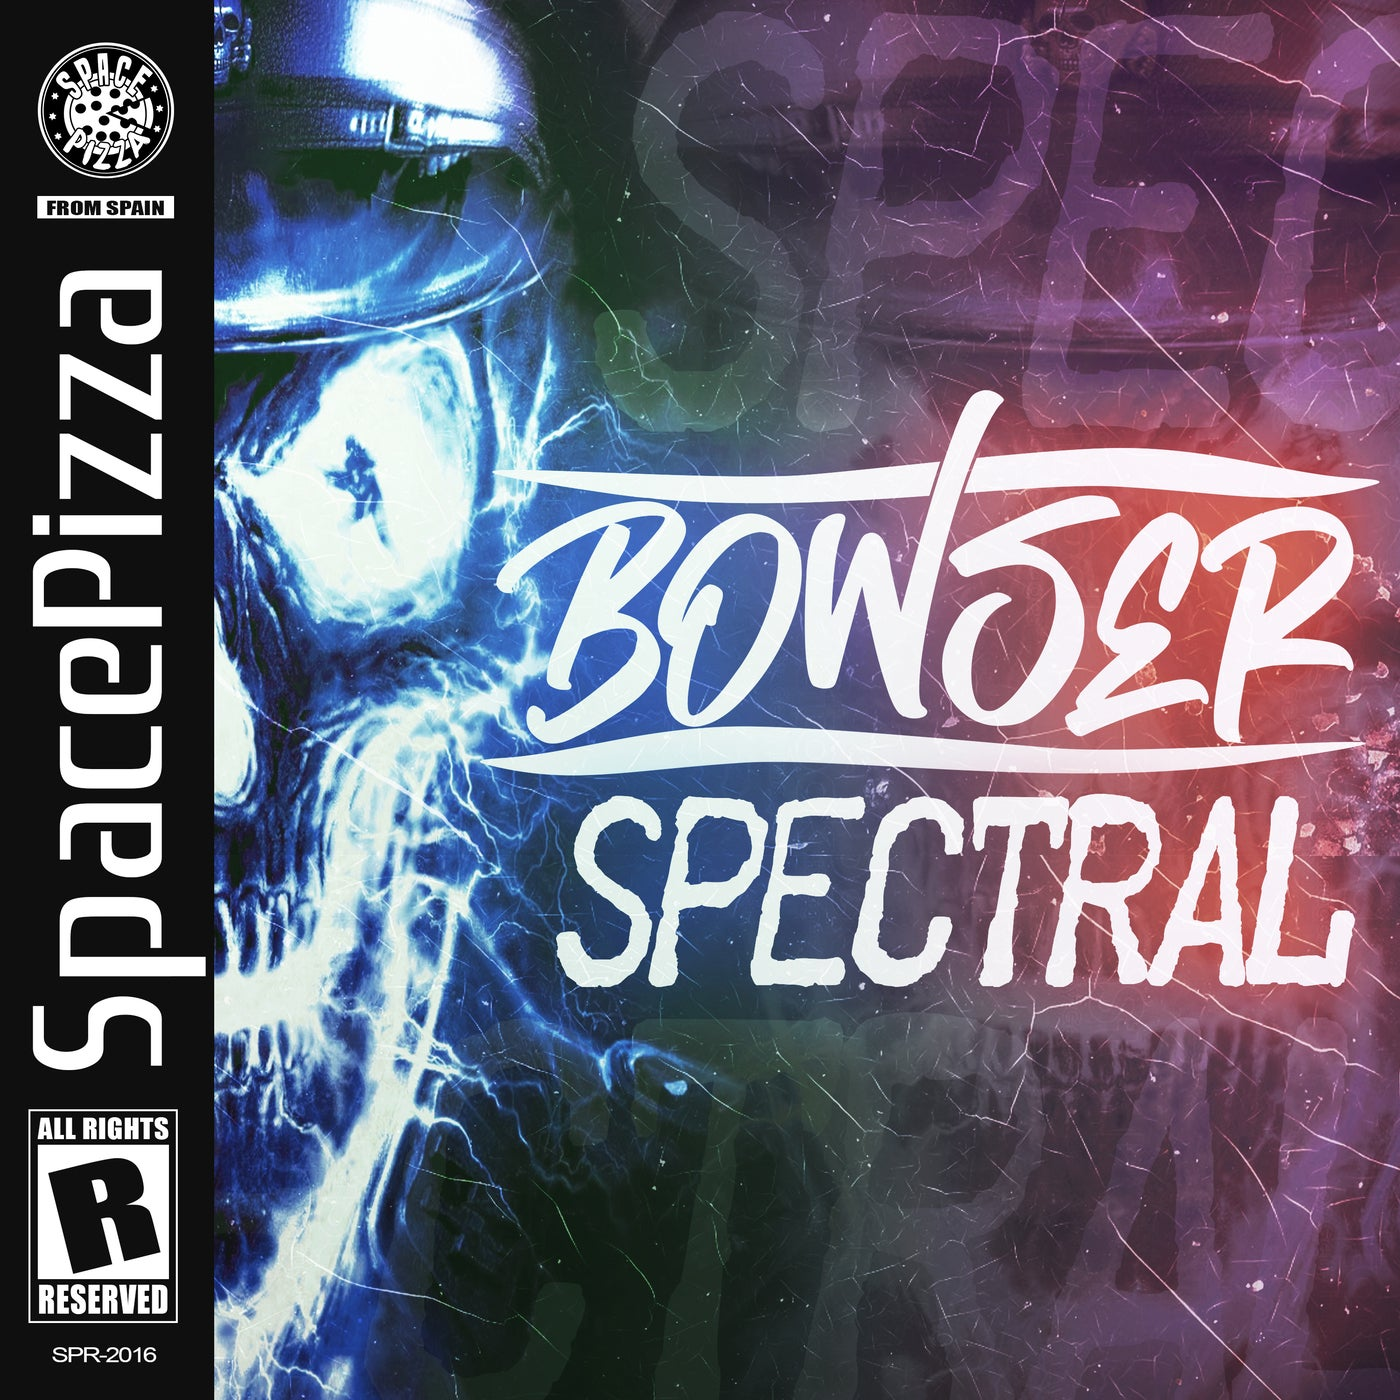 Spectral (Original Mix)